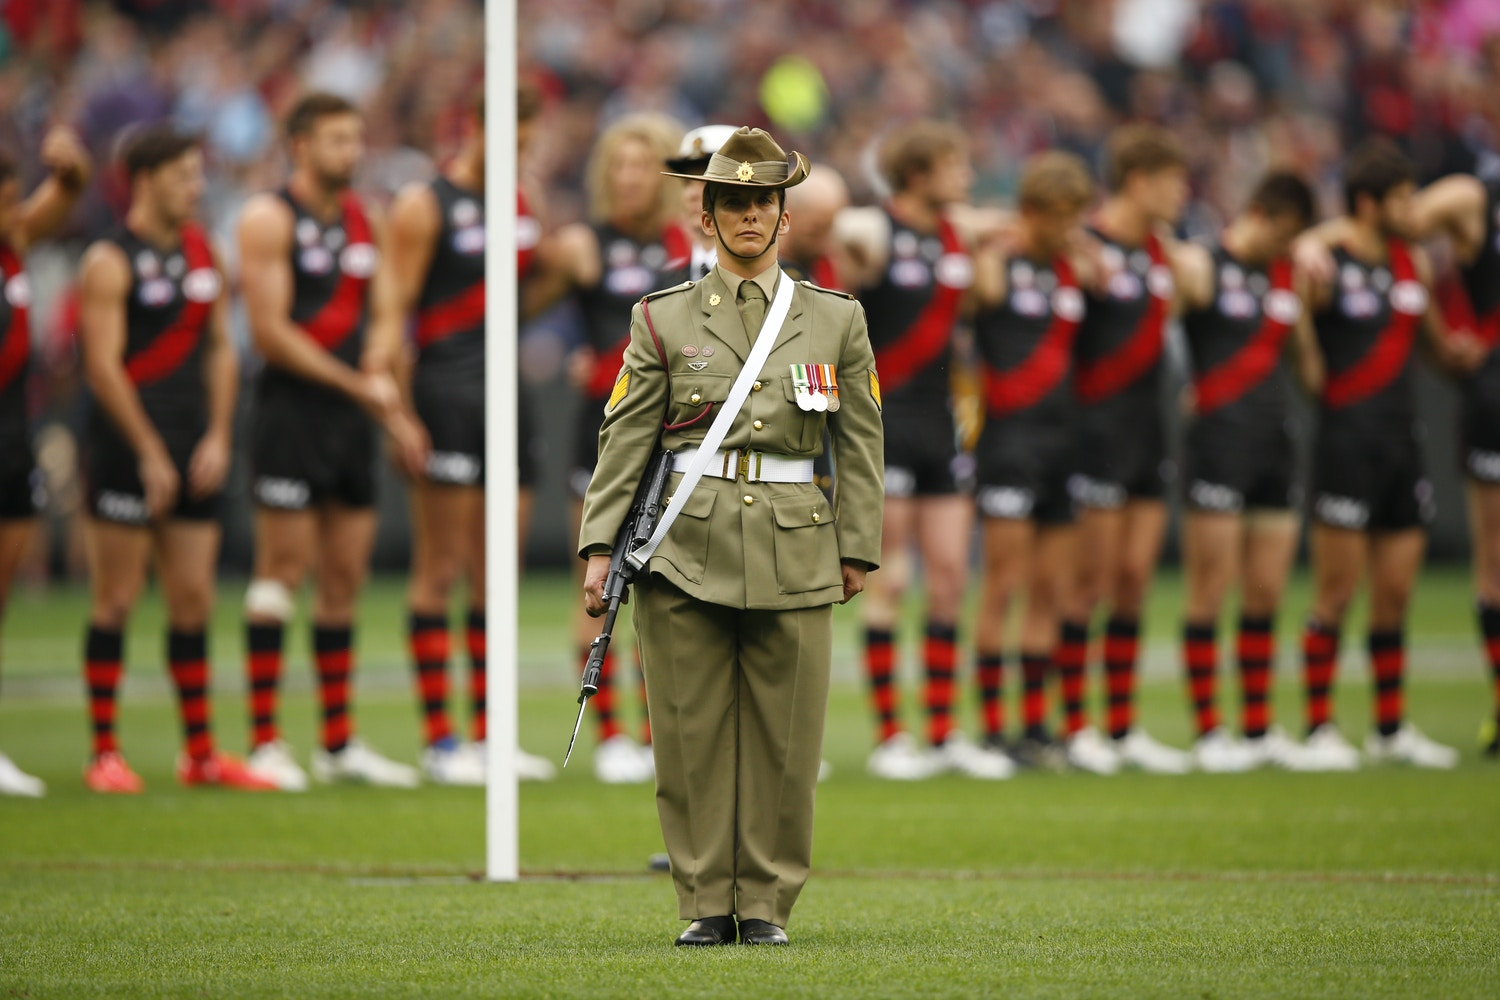 Anzac Day - What Does It Mean To Me?